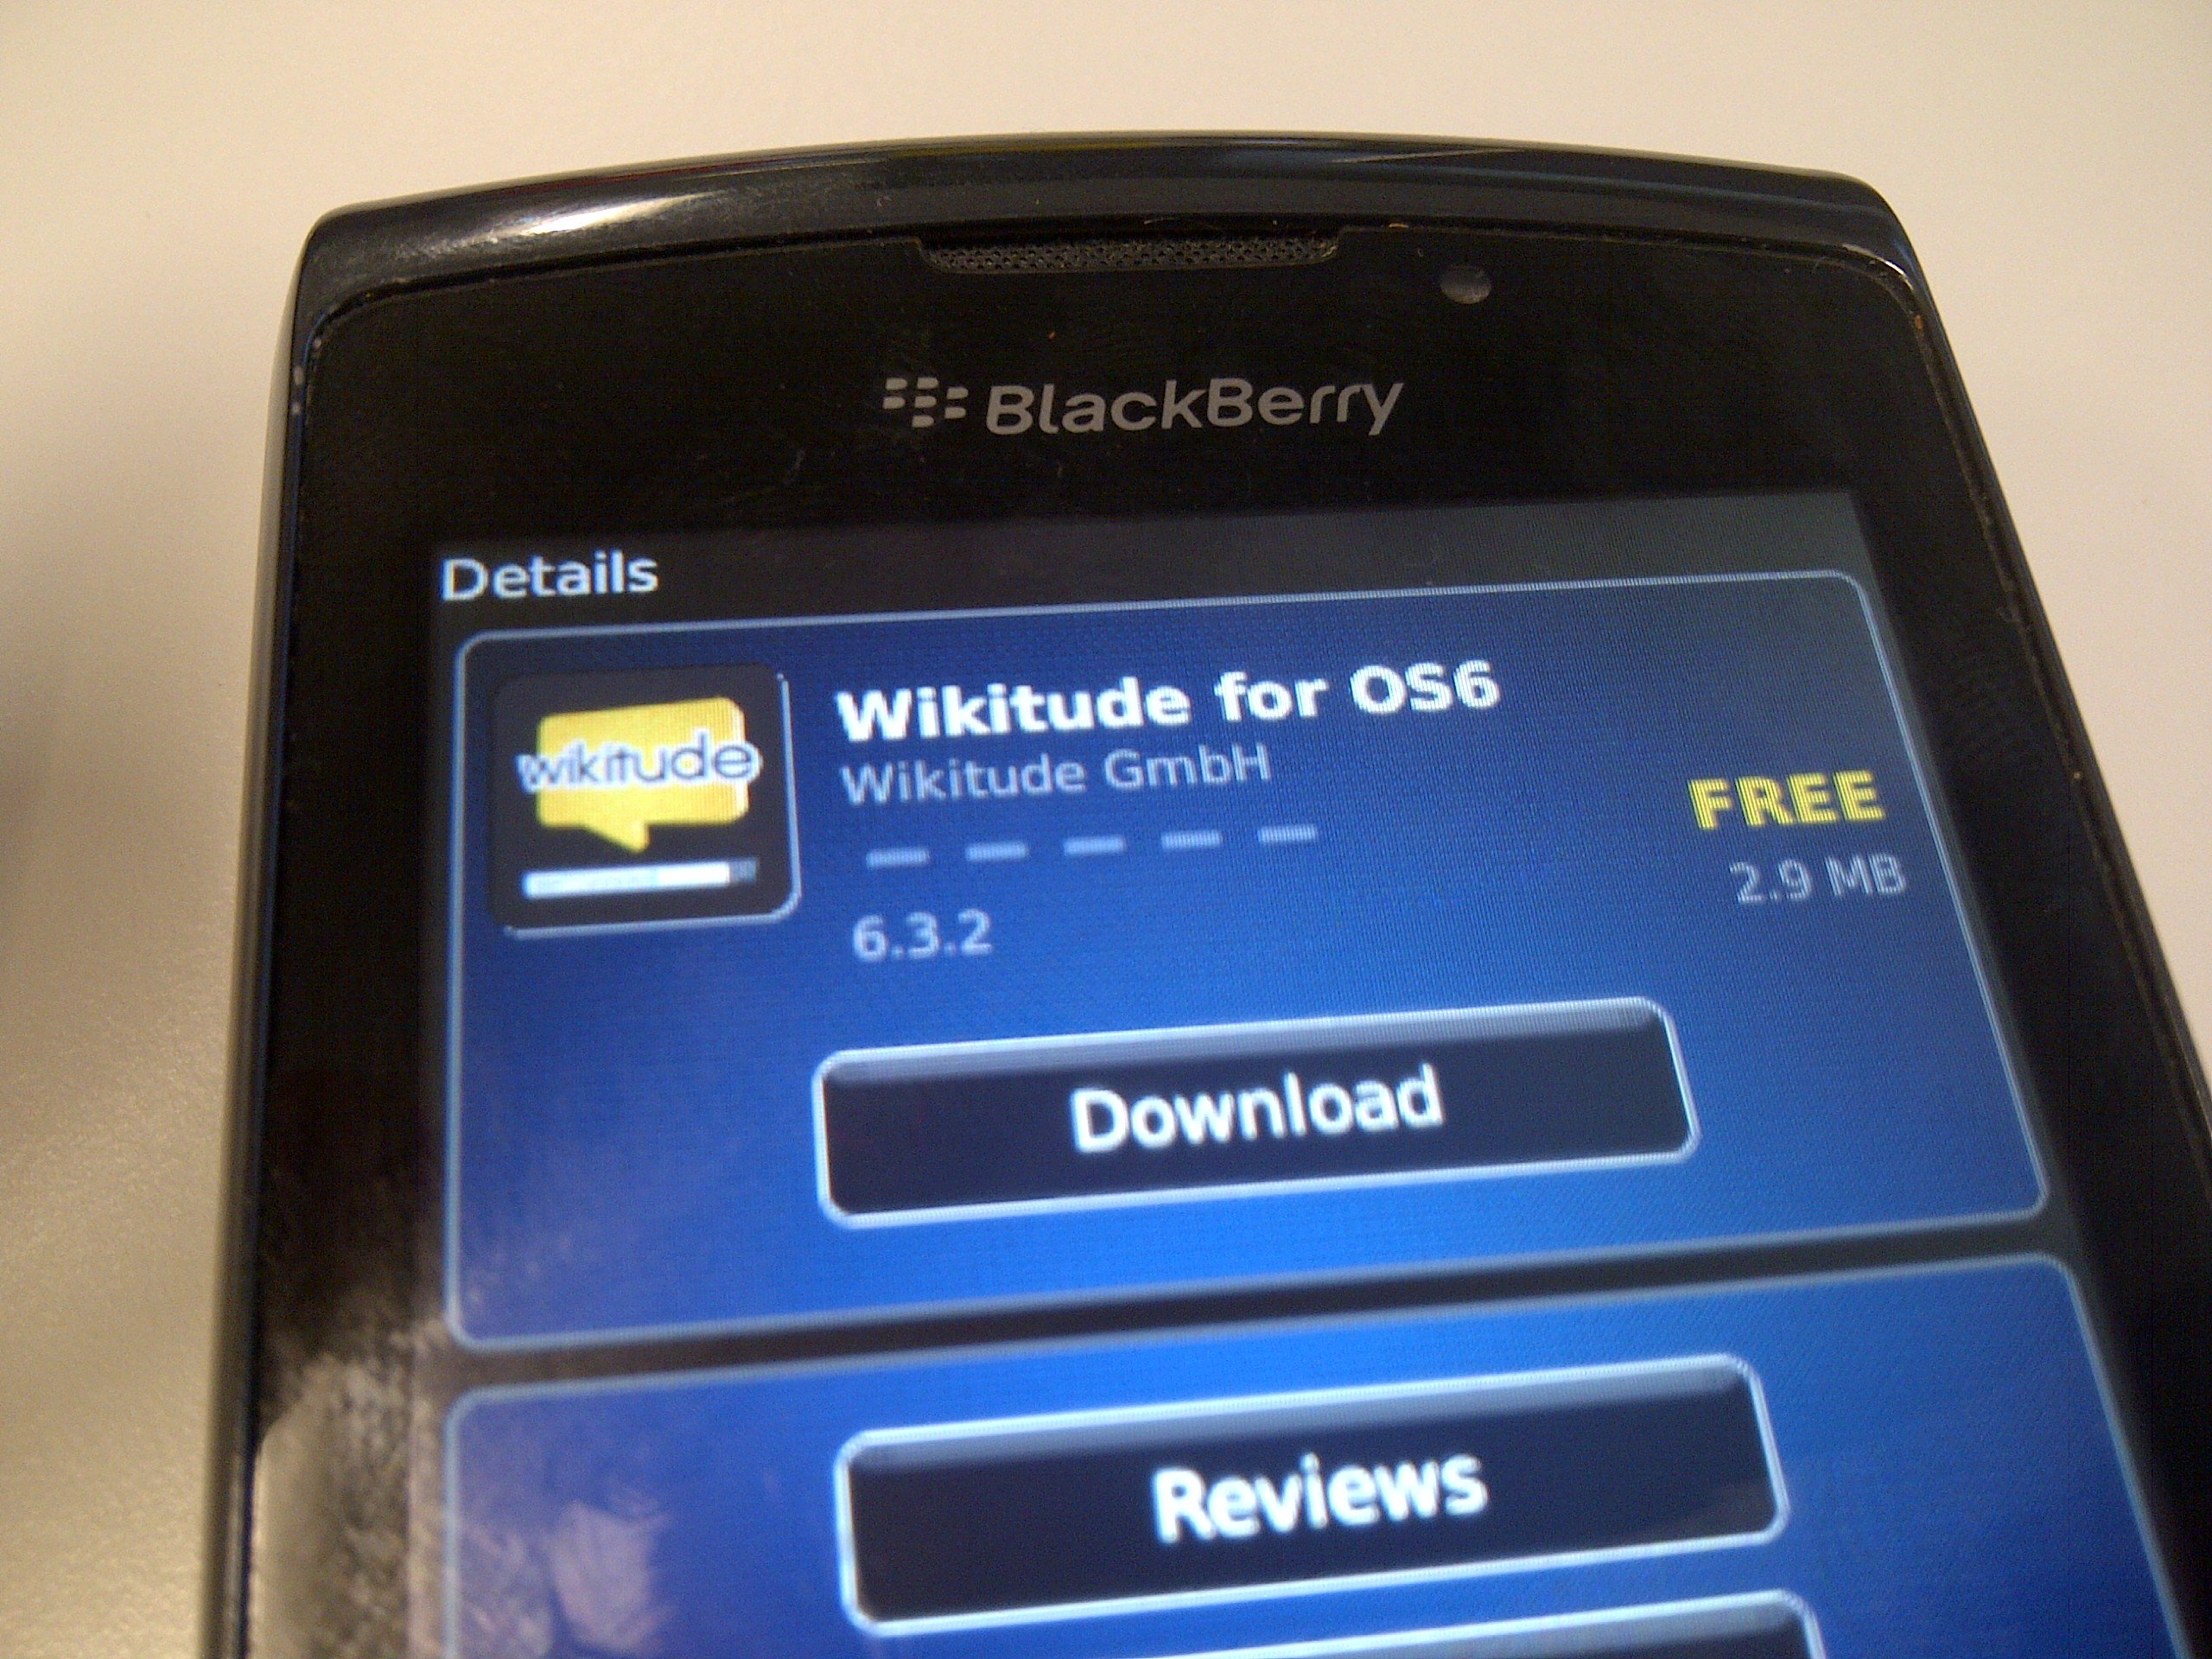 BlackBerry-wikitude6